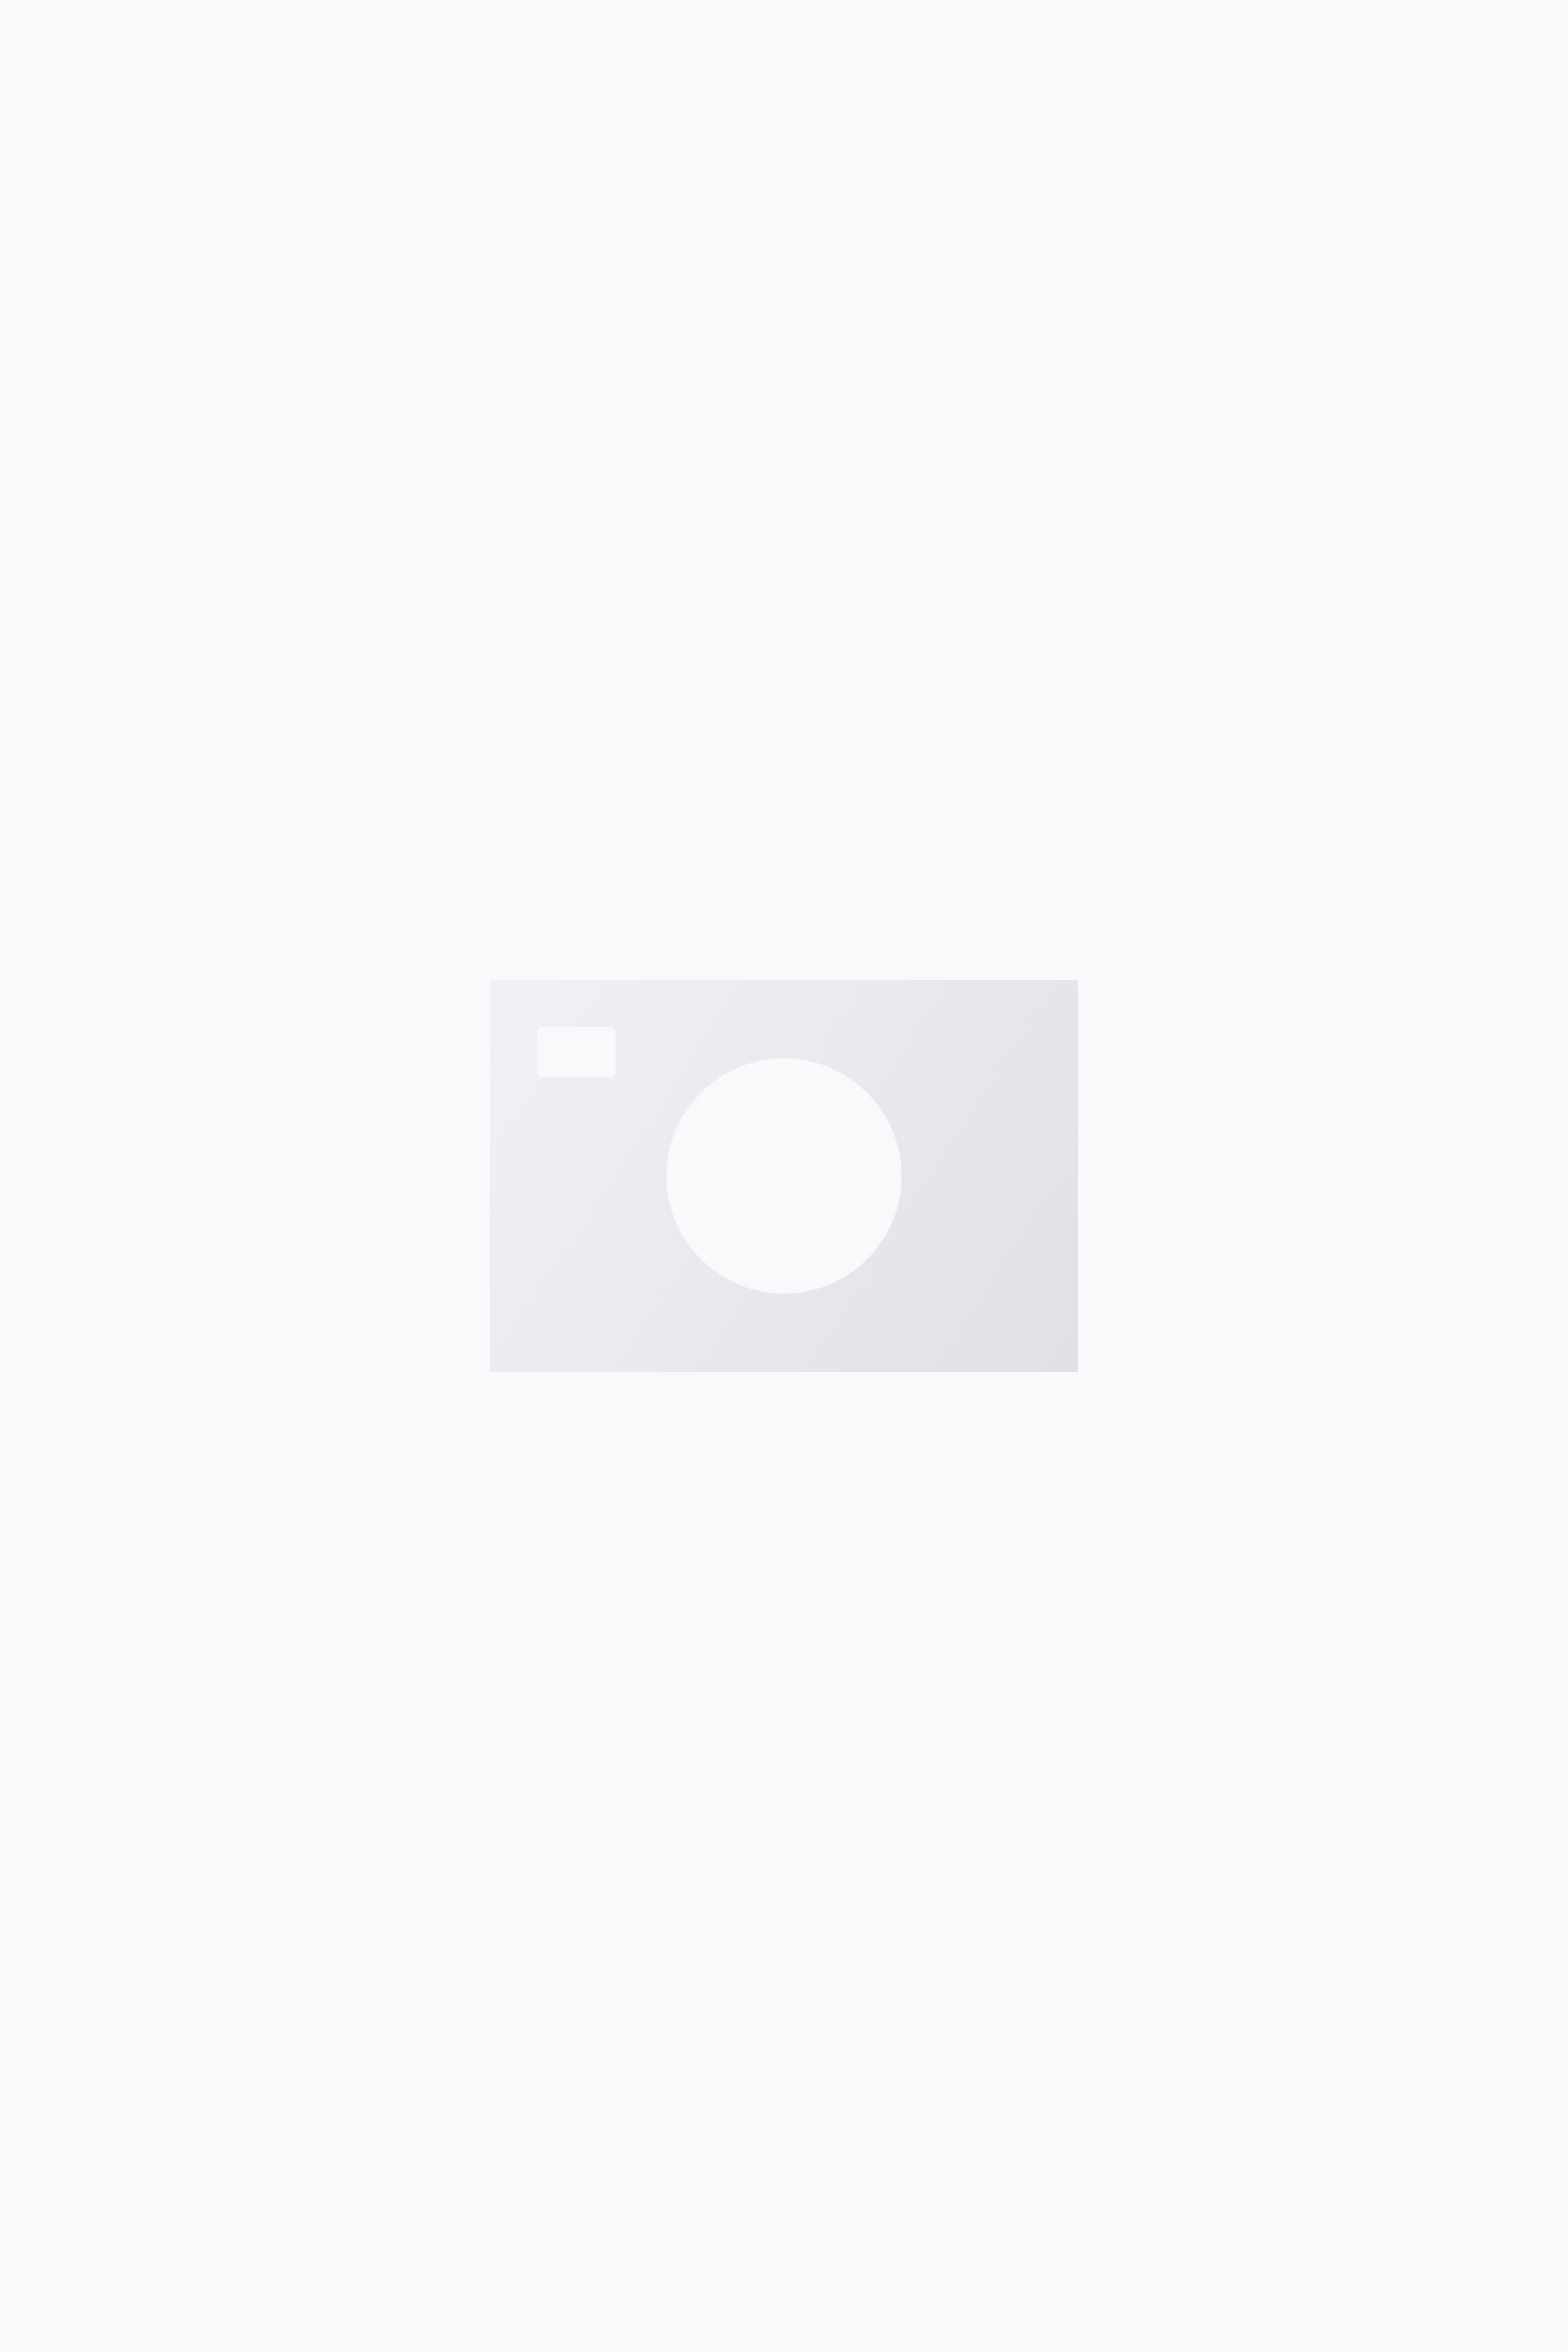 COS RELAXED-FIT STRIPED T-SHIRT,Navy / White